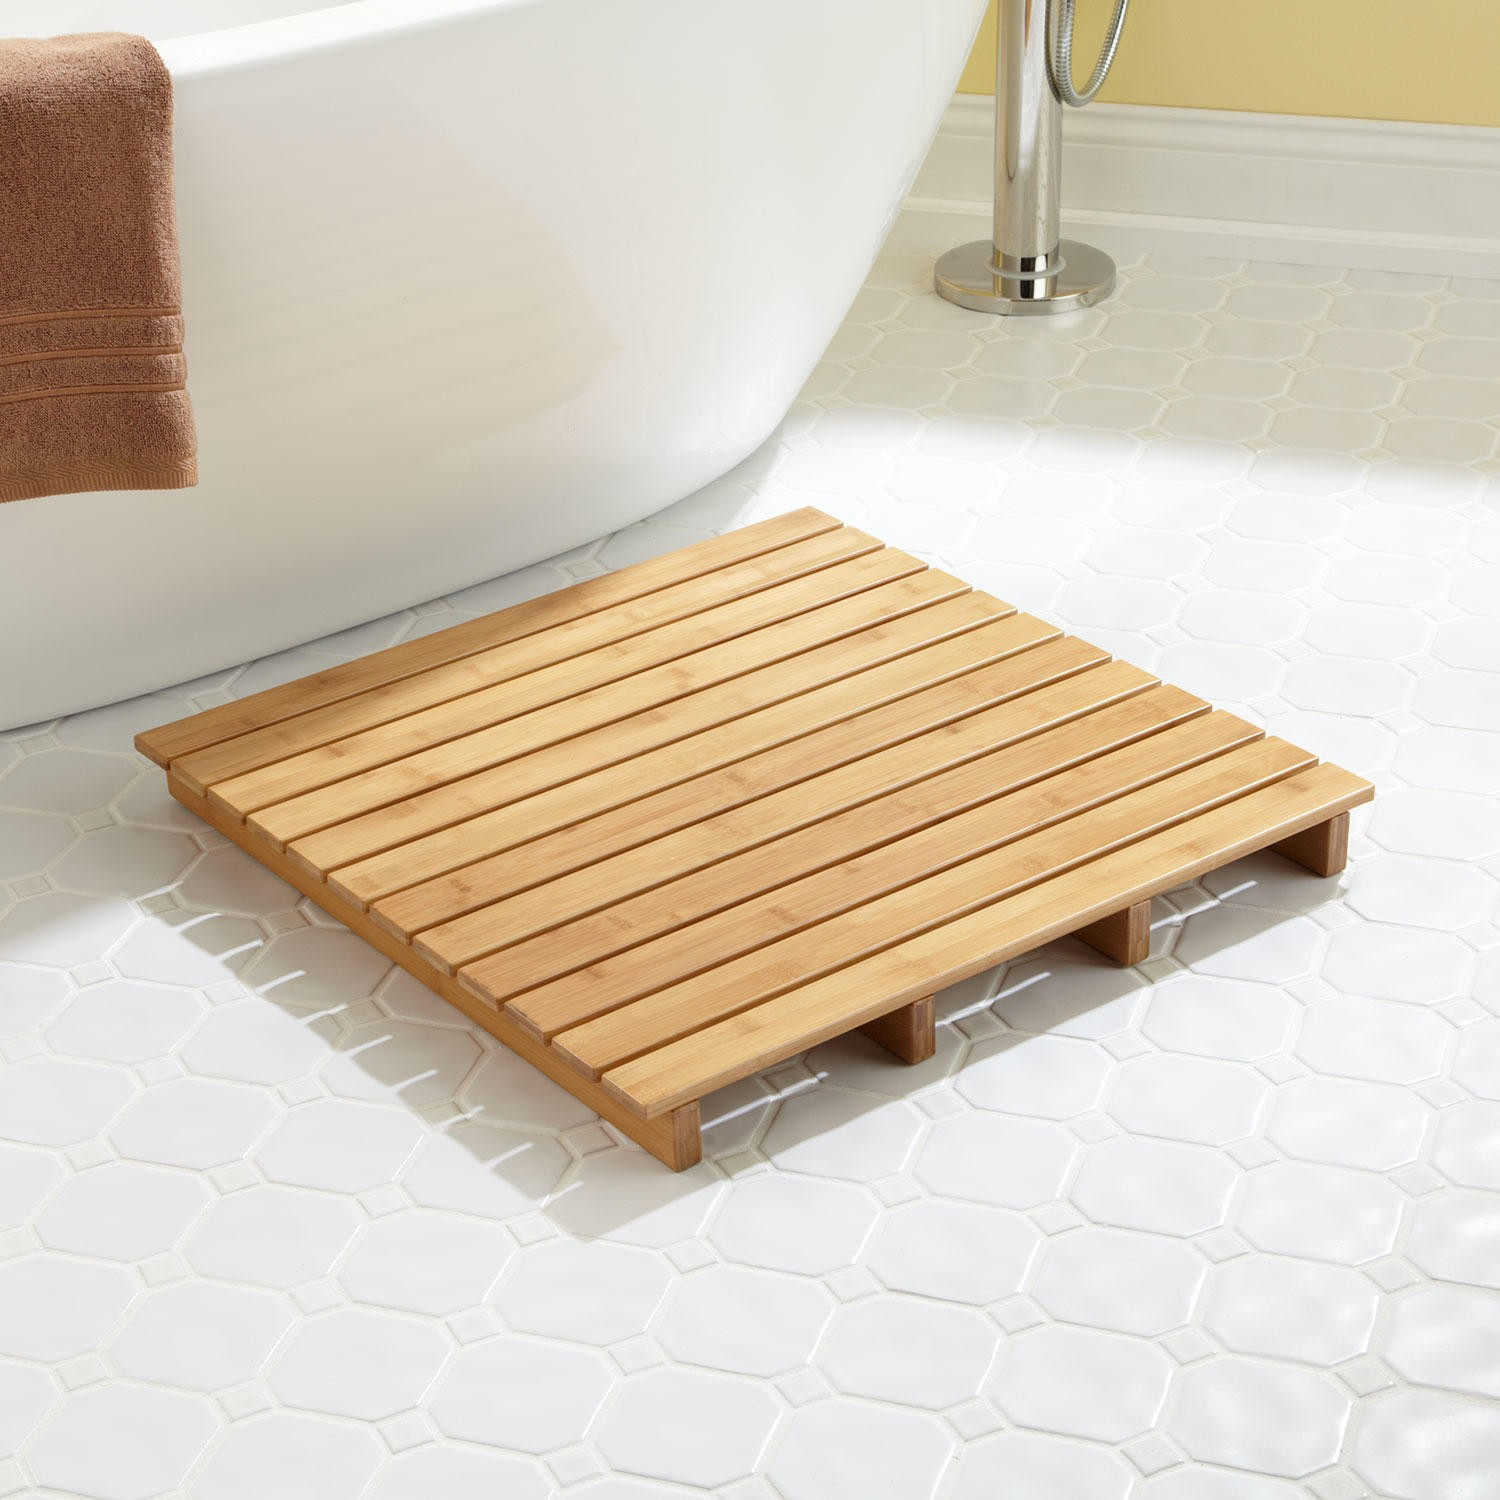 Bath Mat Ideas To Make Your Bathroom Feel More Like A Spa